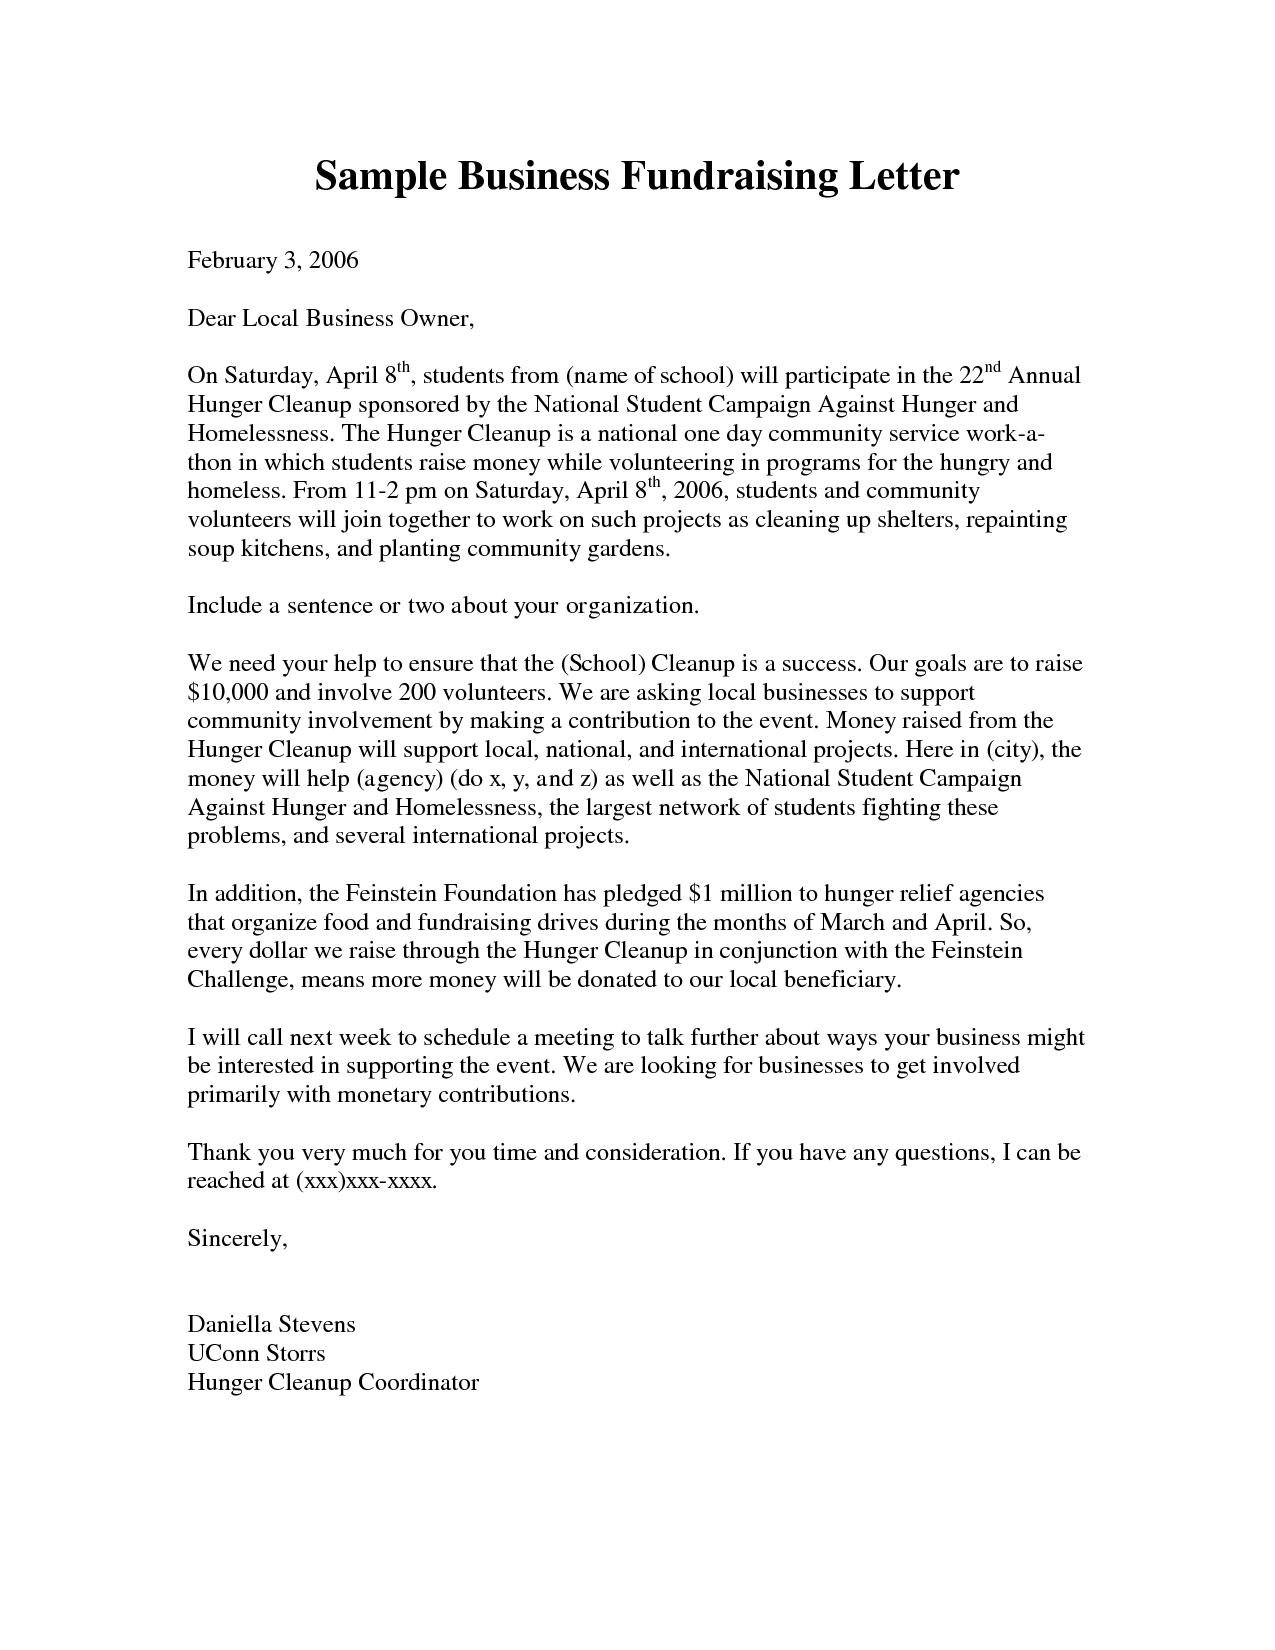 Business Fundraising Letter Sample Fundraising Letters For Silent